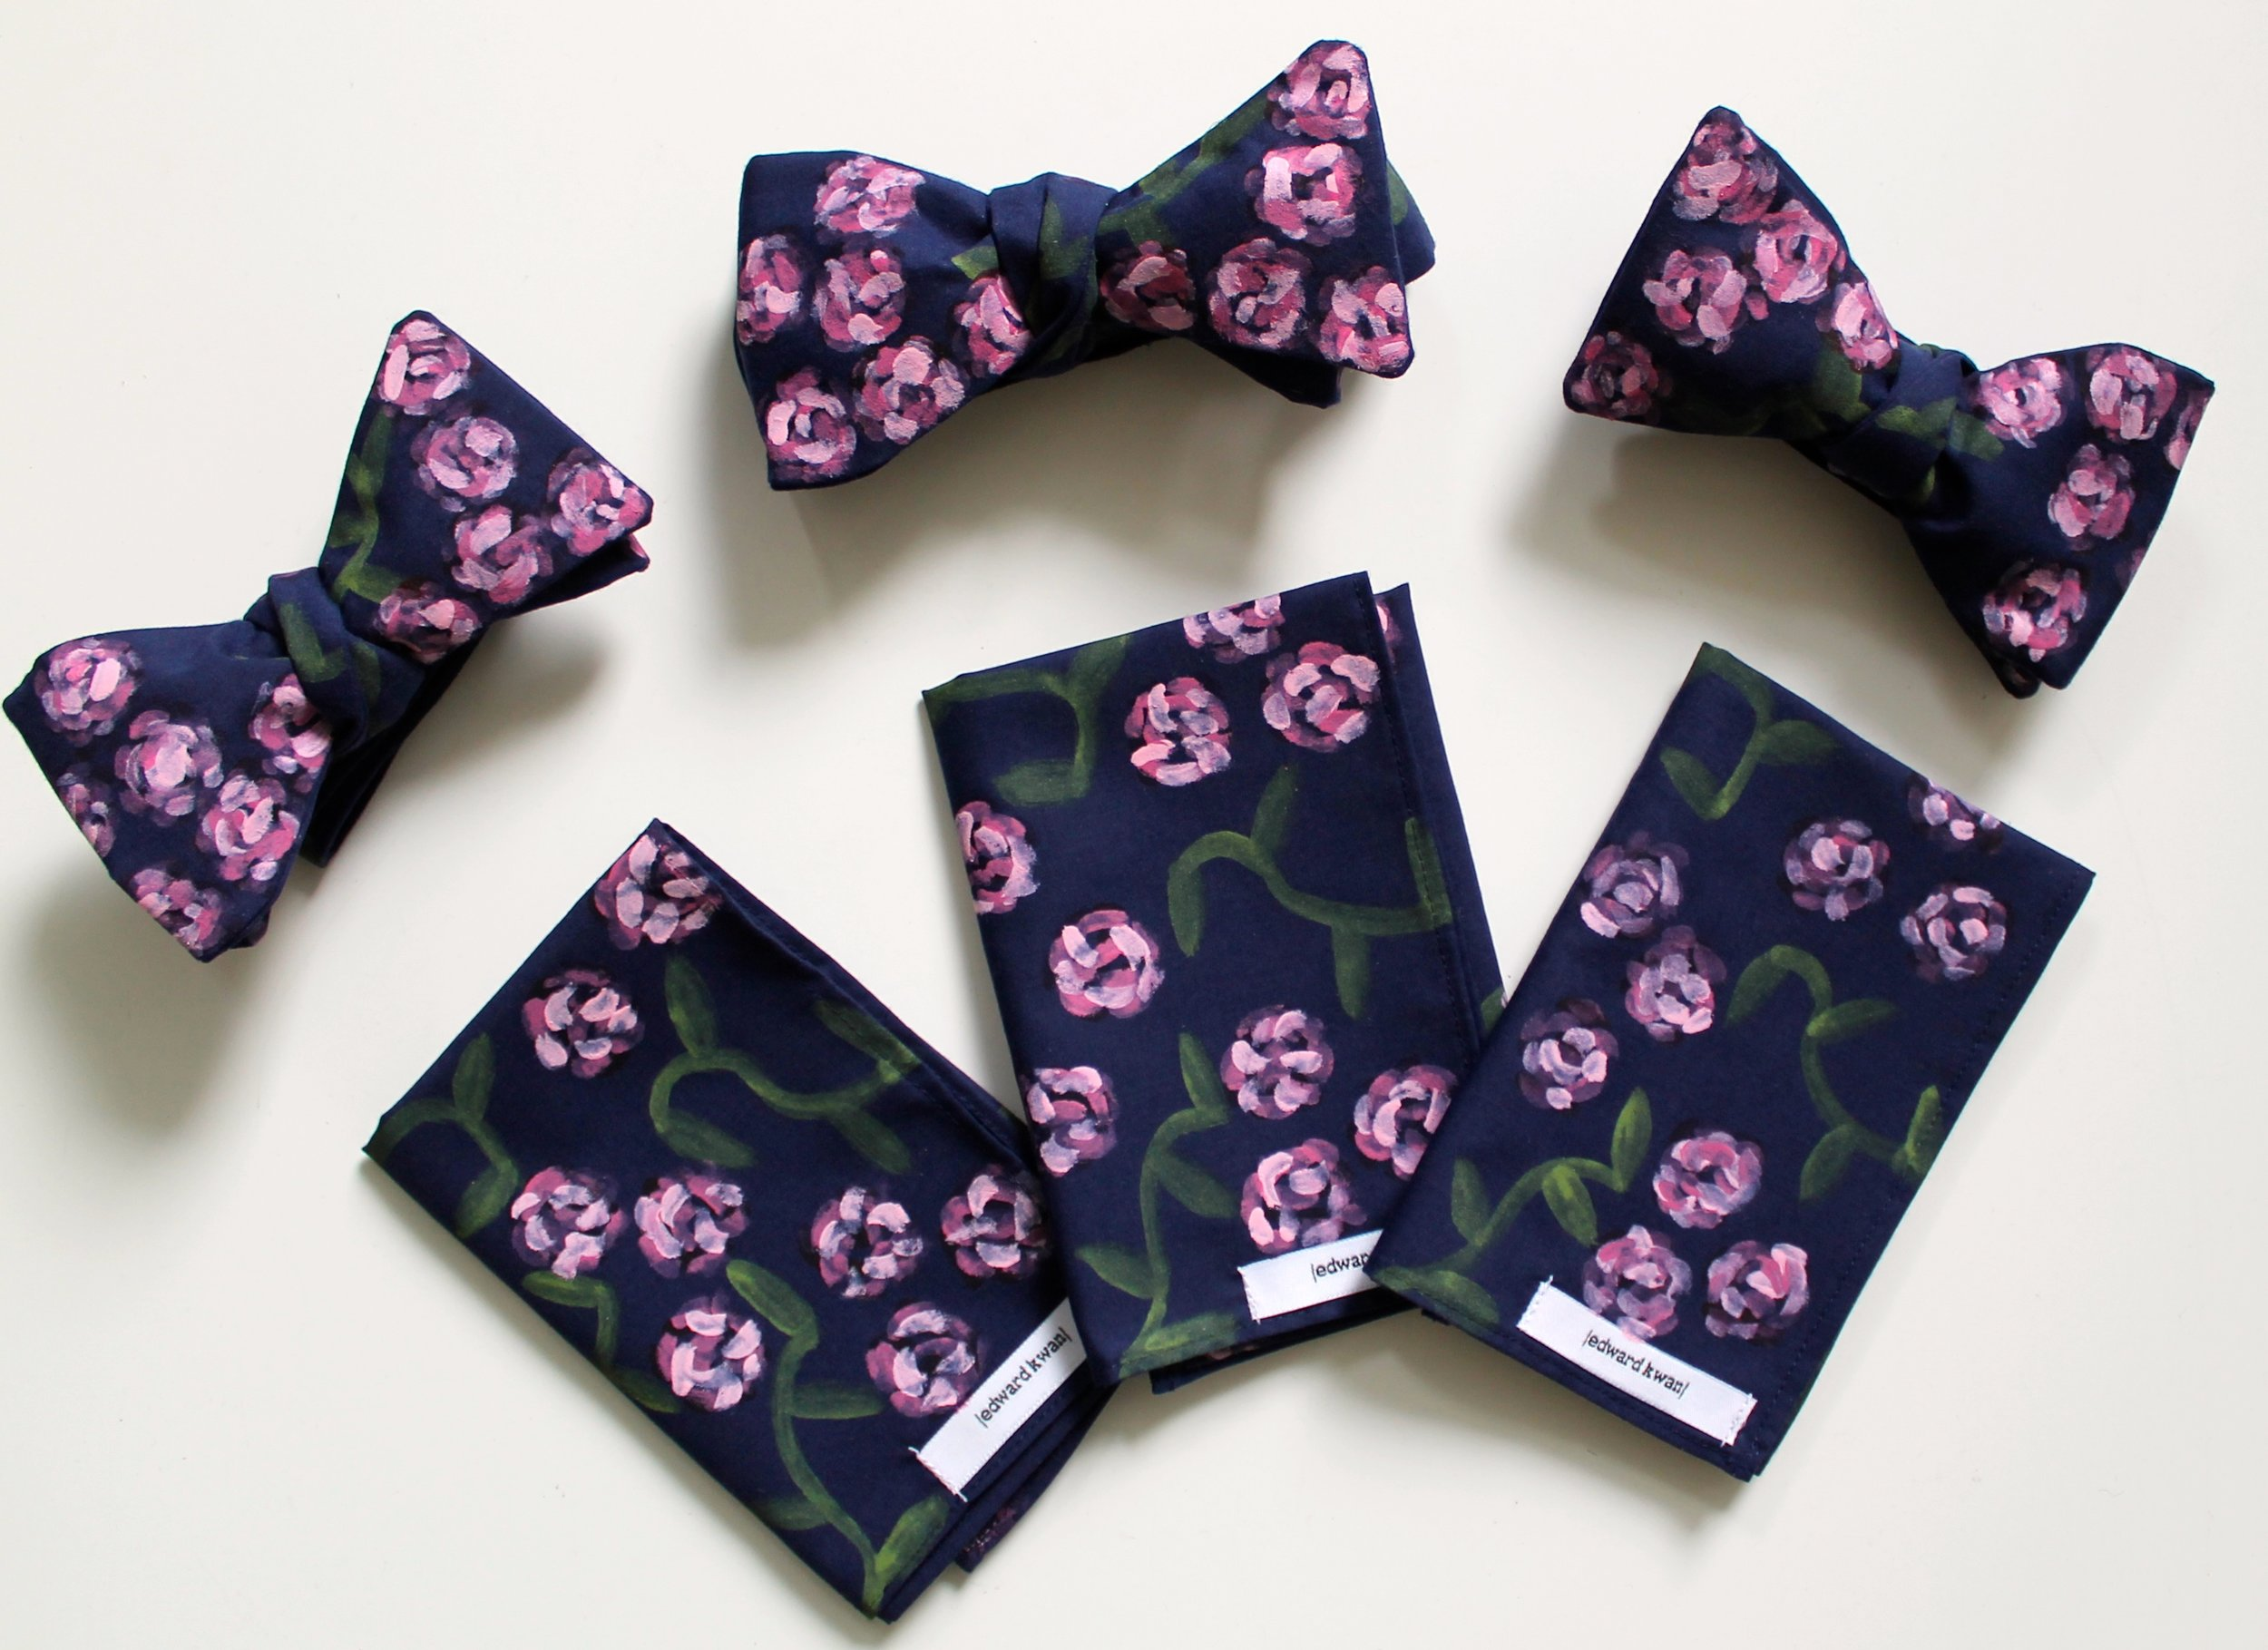 edward kwan hand painted bow ties pocket squares melbourne australia.JPG